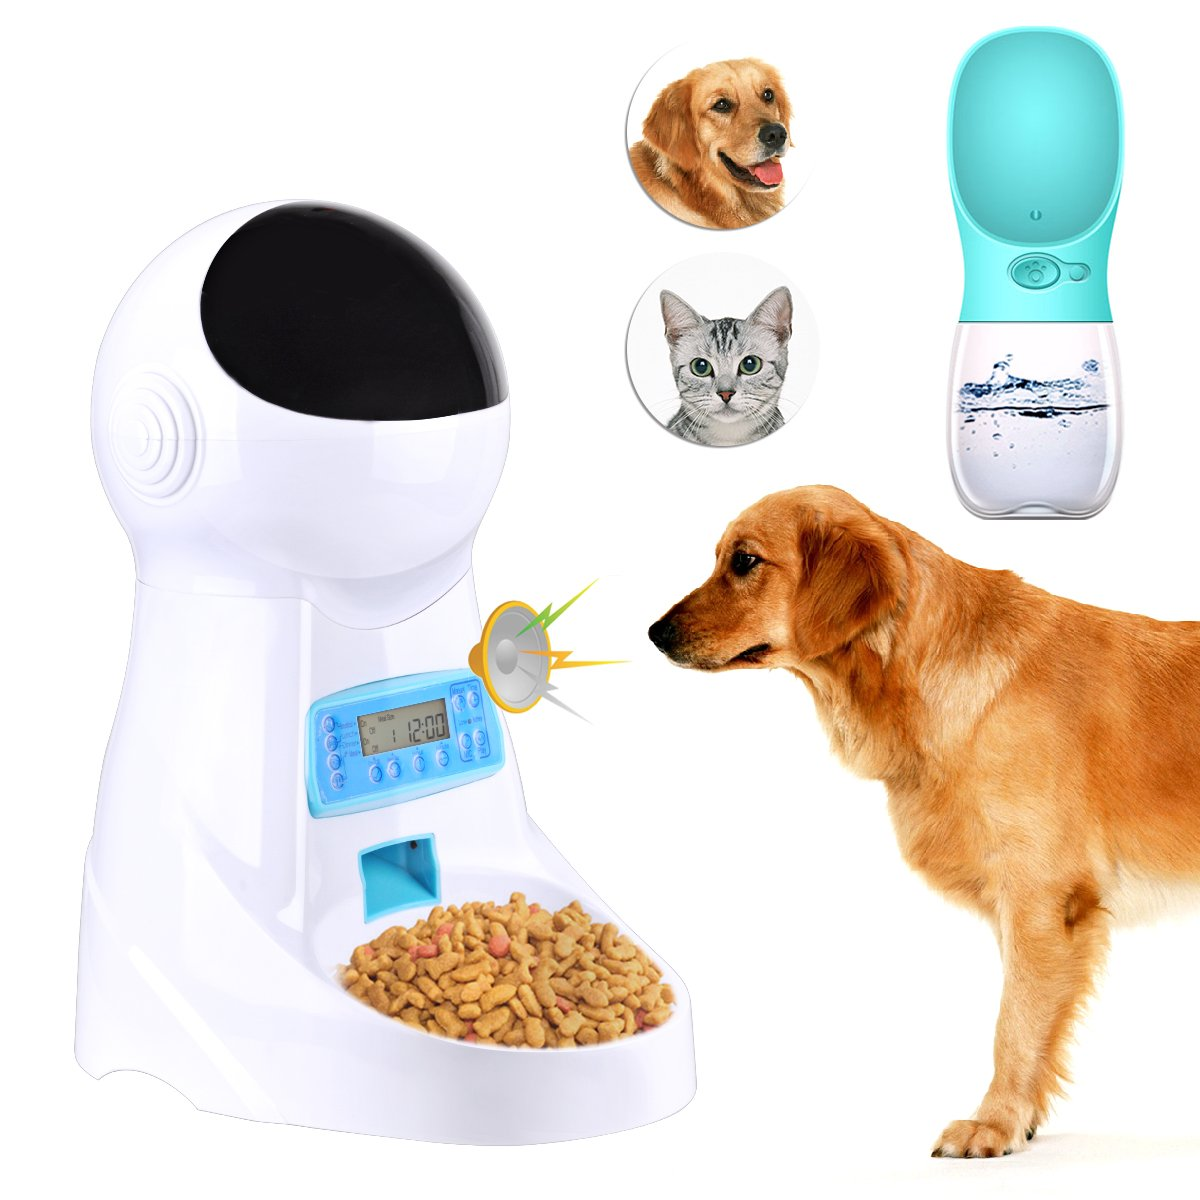 Congerate Automatic Pet Feeder Dog Cat Feeder Food Dispenser with Timer, LCD Display and Sound Recording And Pet Water Feeder Bottle (Blue)